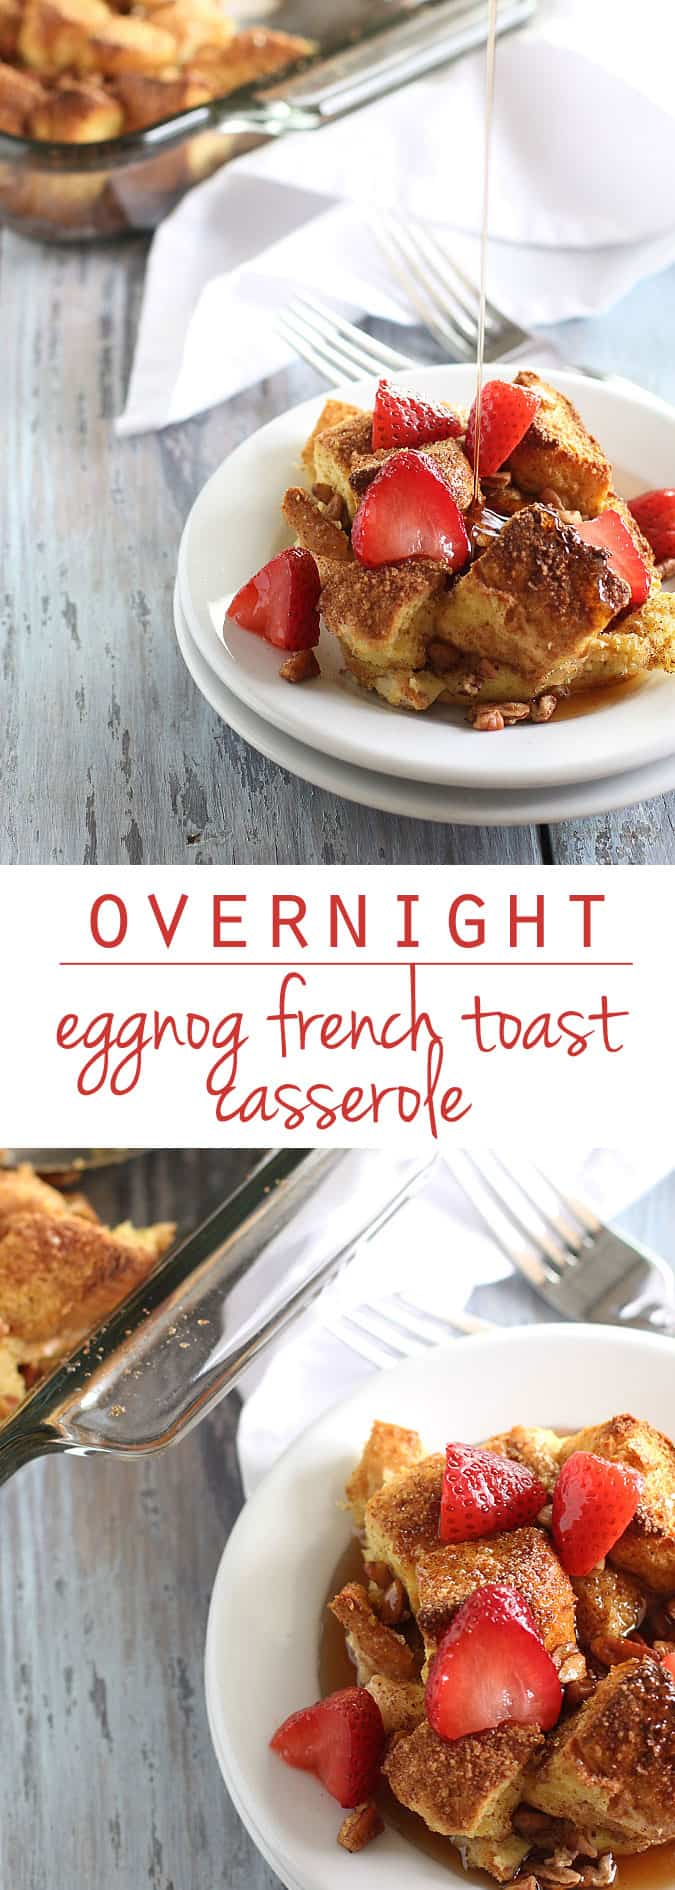 Overnight Eggnog French Toast Casserole - Make ahead the night before for a hassle-free breakfast!